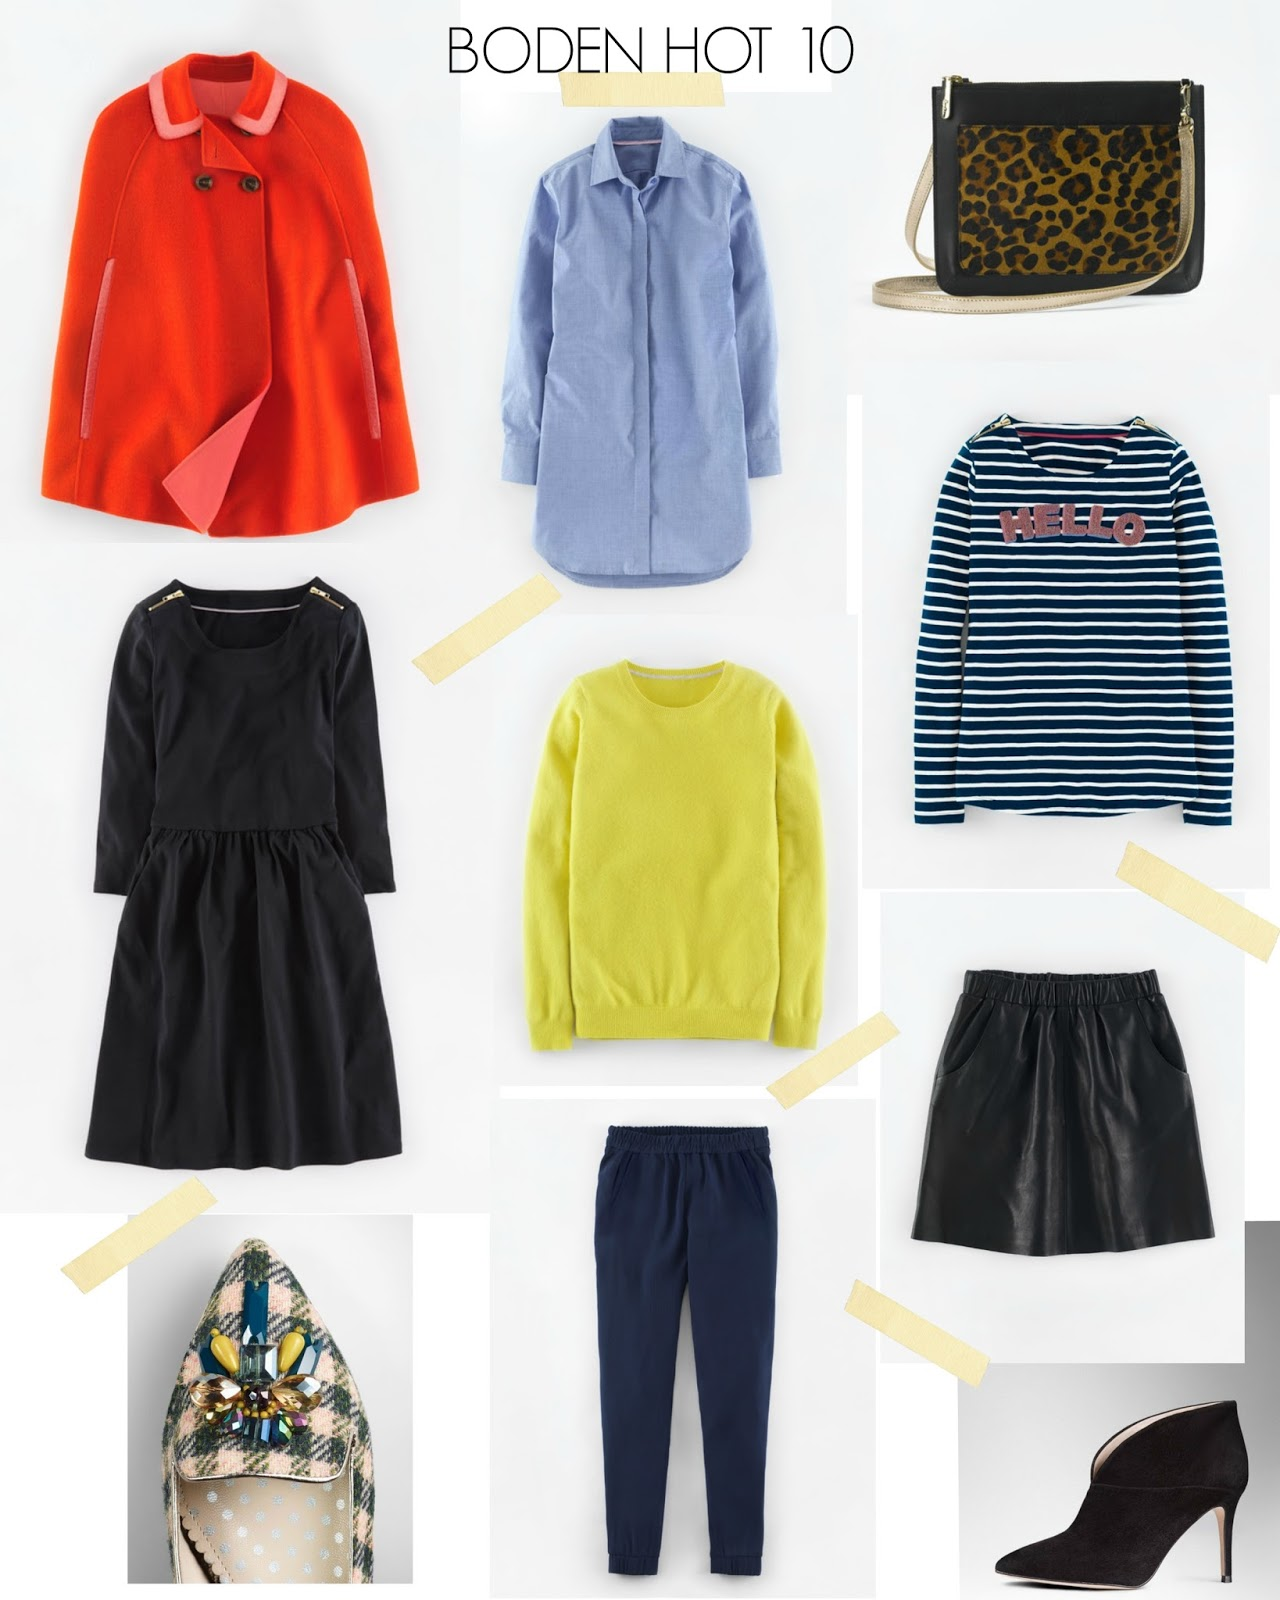 mamasvib, V. I. BUYS: My Boden Top Ten - so hot you'll need to to quick to click…, boden top ten, fashion editors boden picks, new season, hot buys